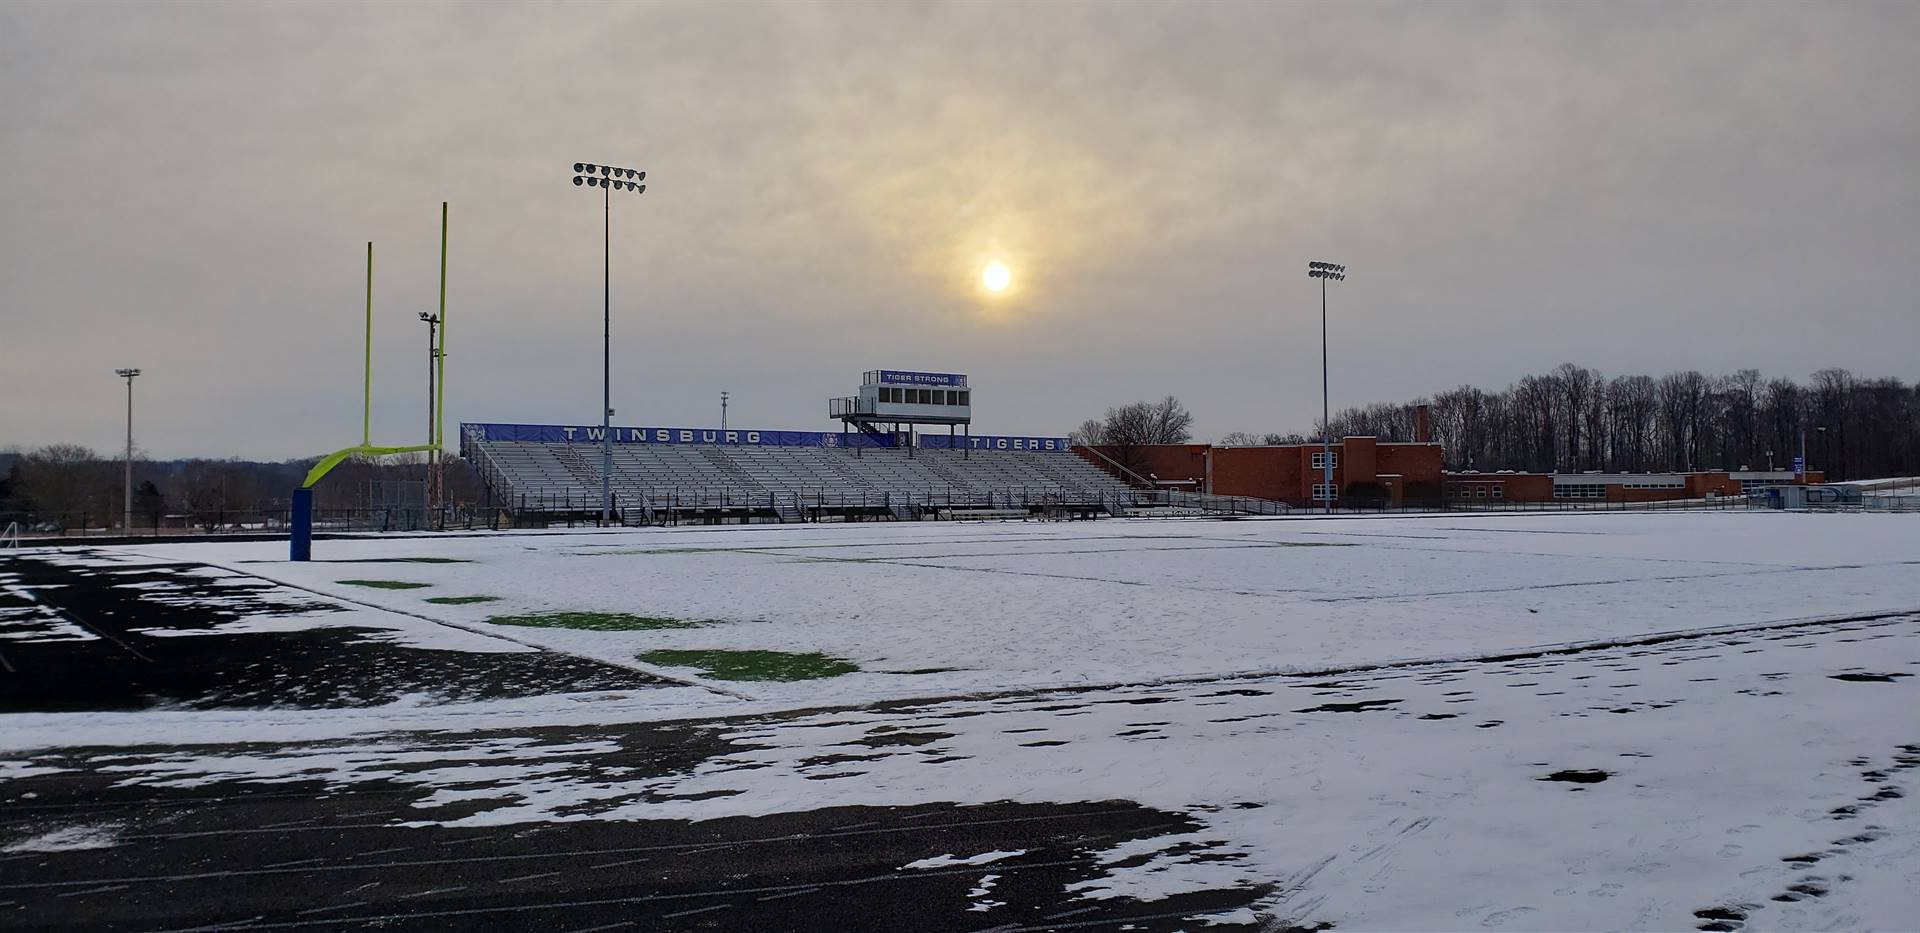 Blue Dawn 1:  The sun rising over the visiting bleachers at Tiger Stadium.